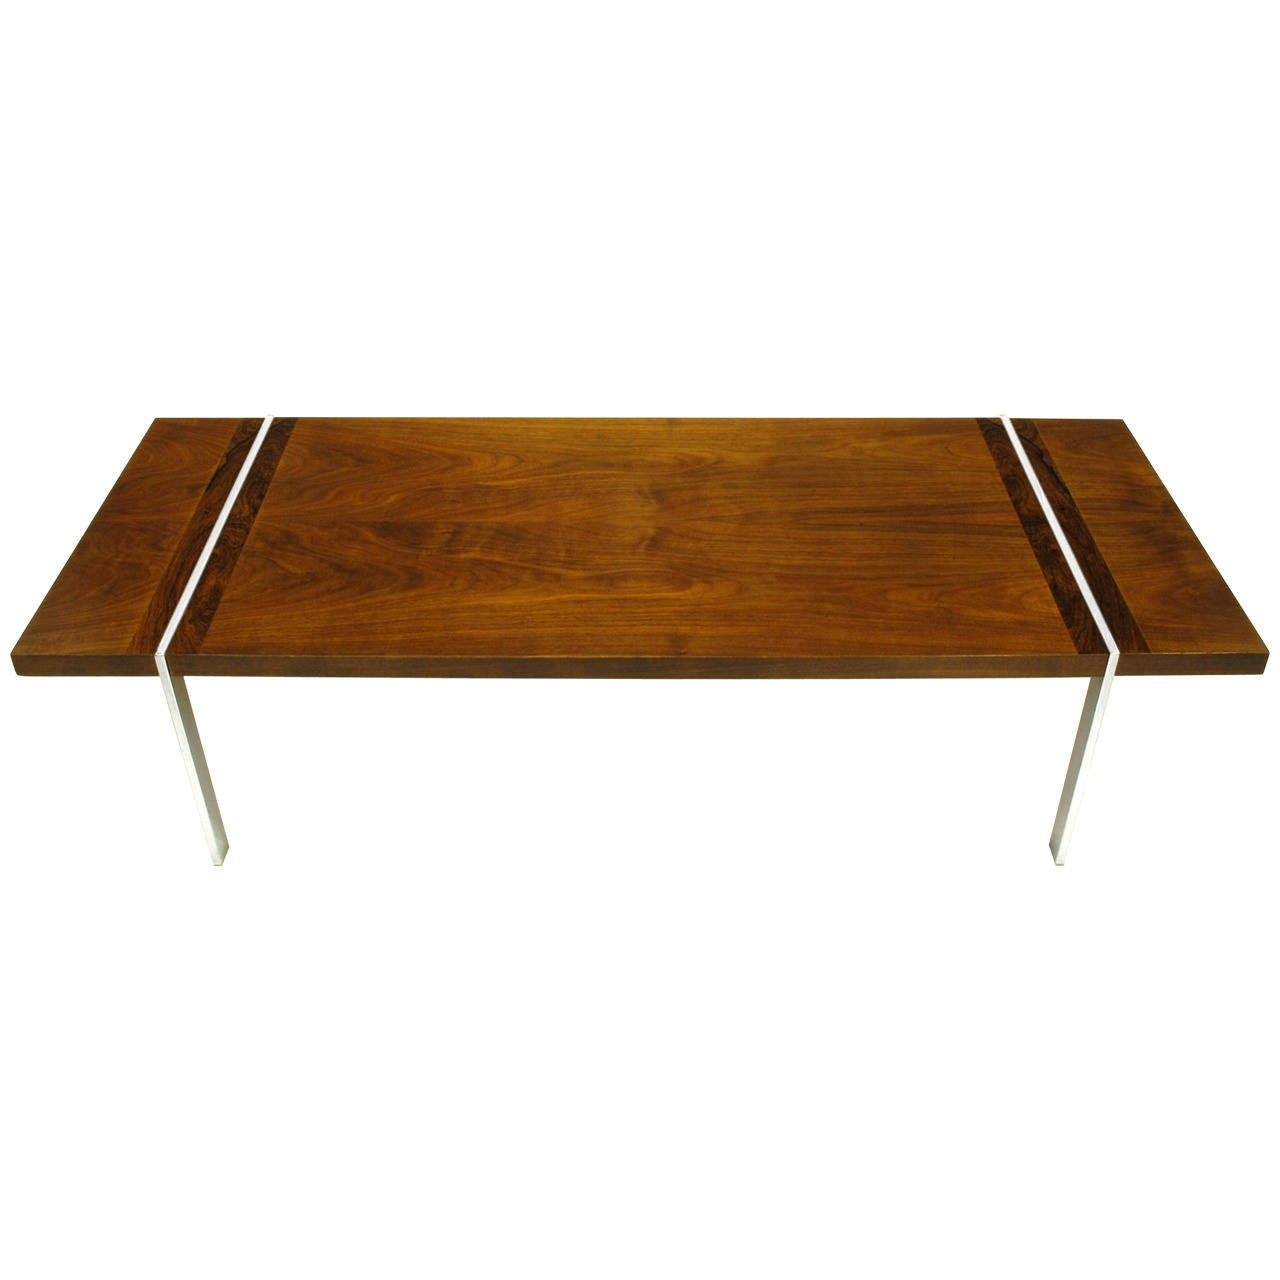 Chrome Walnut And Rosewood Tripartite Coffee Table By Lane At 1stdibs